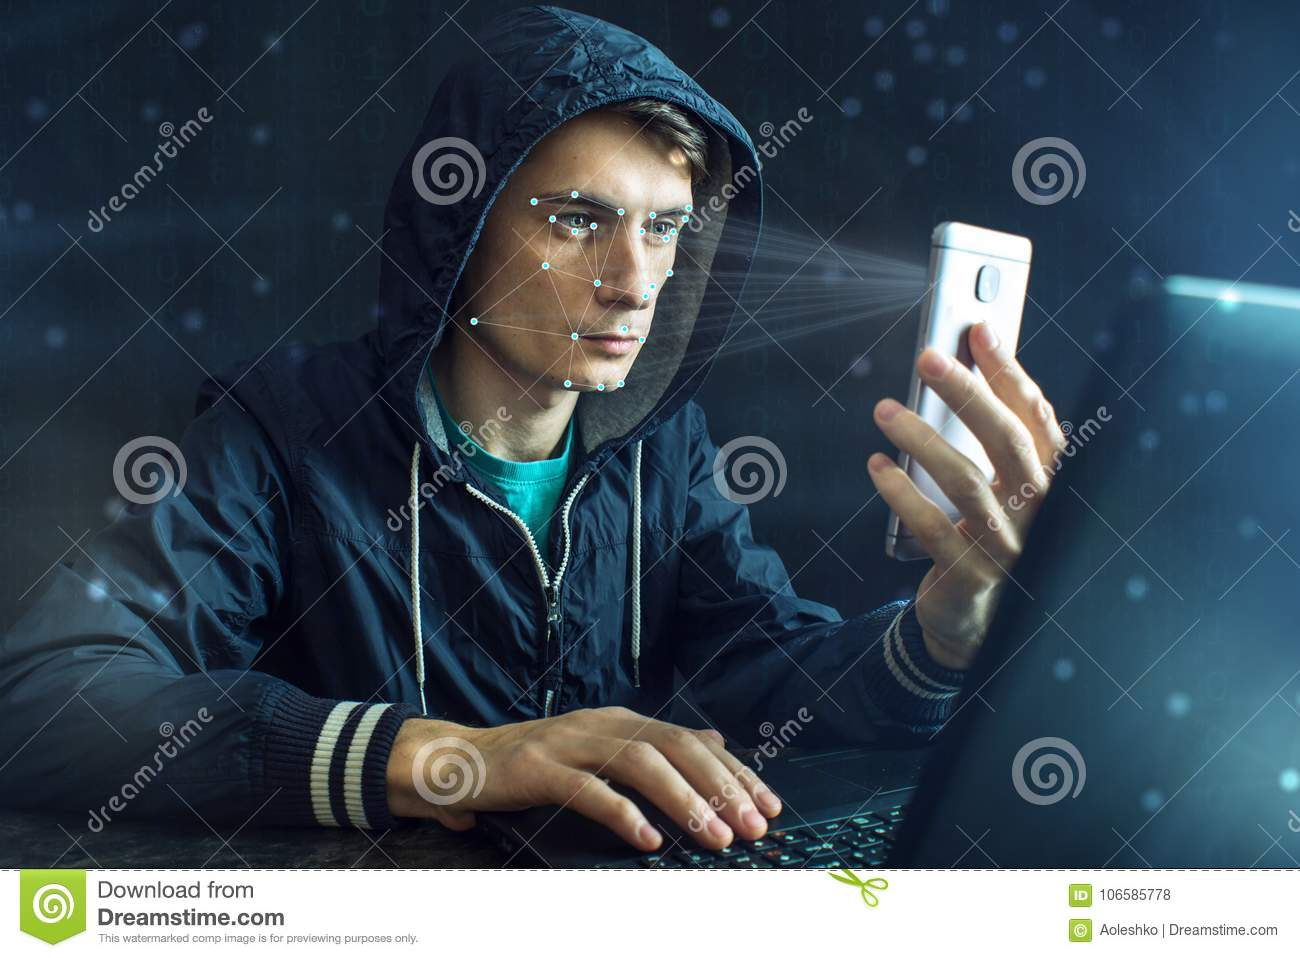 Hacker Is Trying To Hack Into The Phone Using The Personal